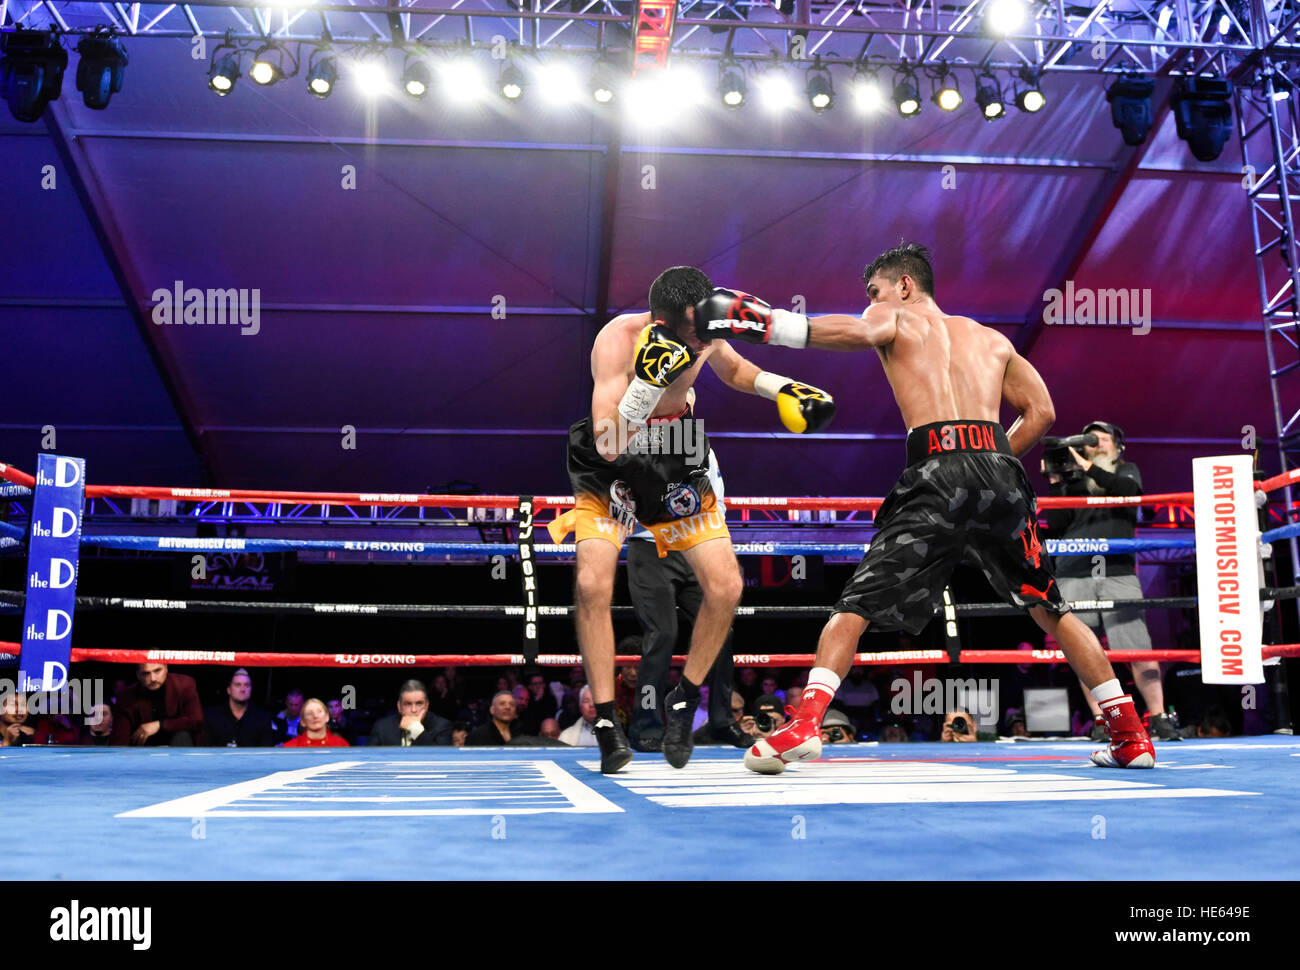 Las Vegas, Nevada, USA. 17th December, 2016. 'Lil' Oscar Cantu battles Aston Palicte in the main event, - Stock Image